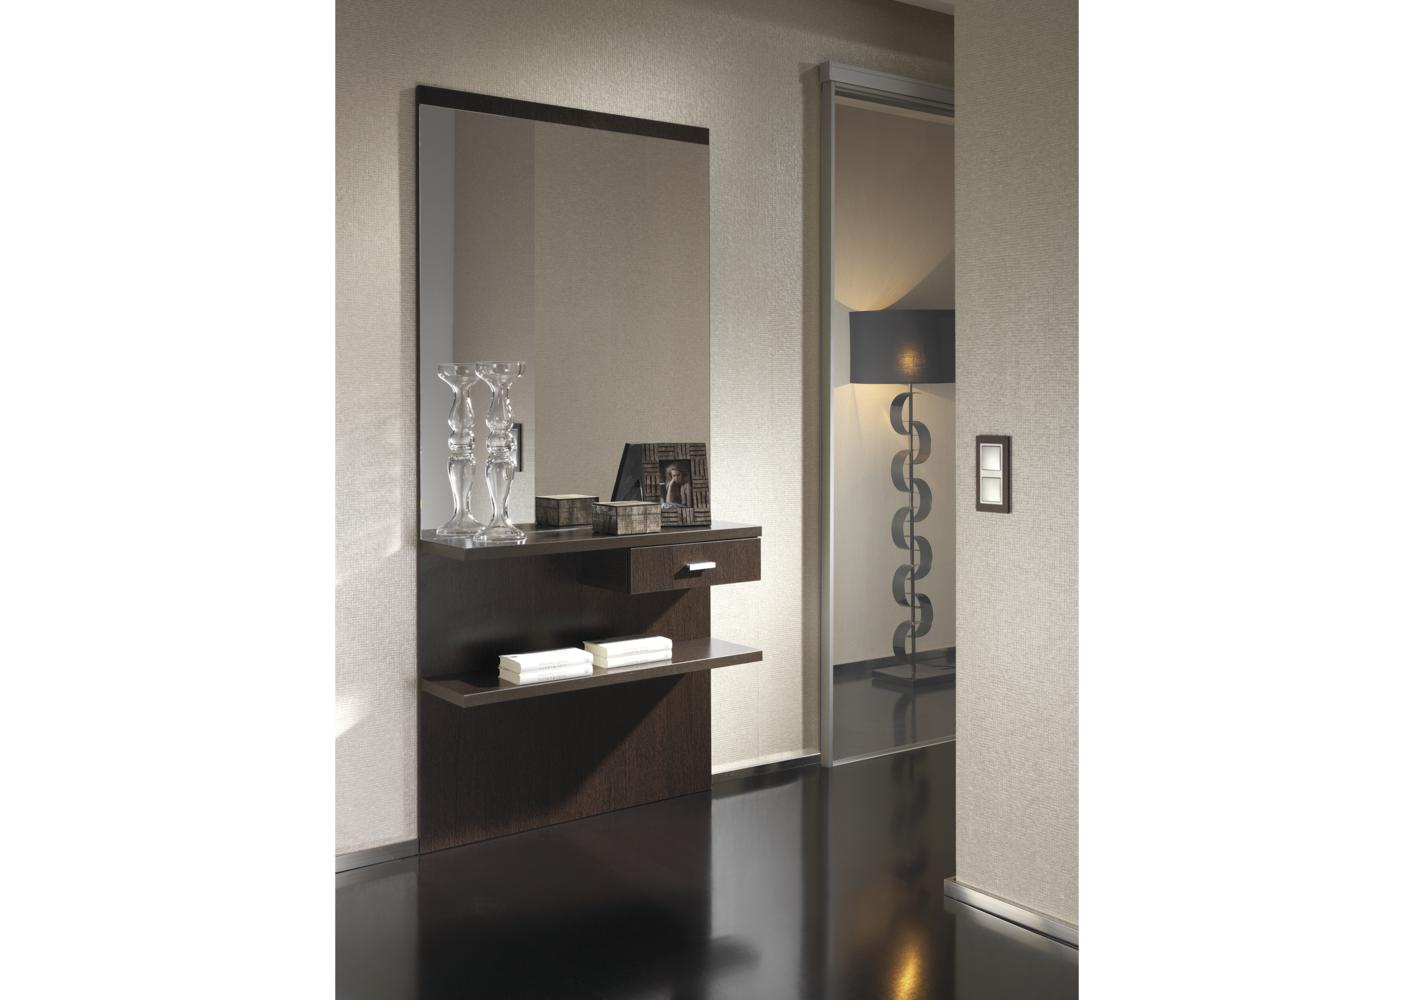 miroir entre free meuble duentre rangement vestiaire miroir u banc with miroir entre idee deco. Black Bedroom Furniture Sets. Home Design Ideas